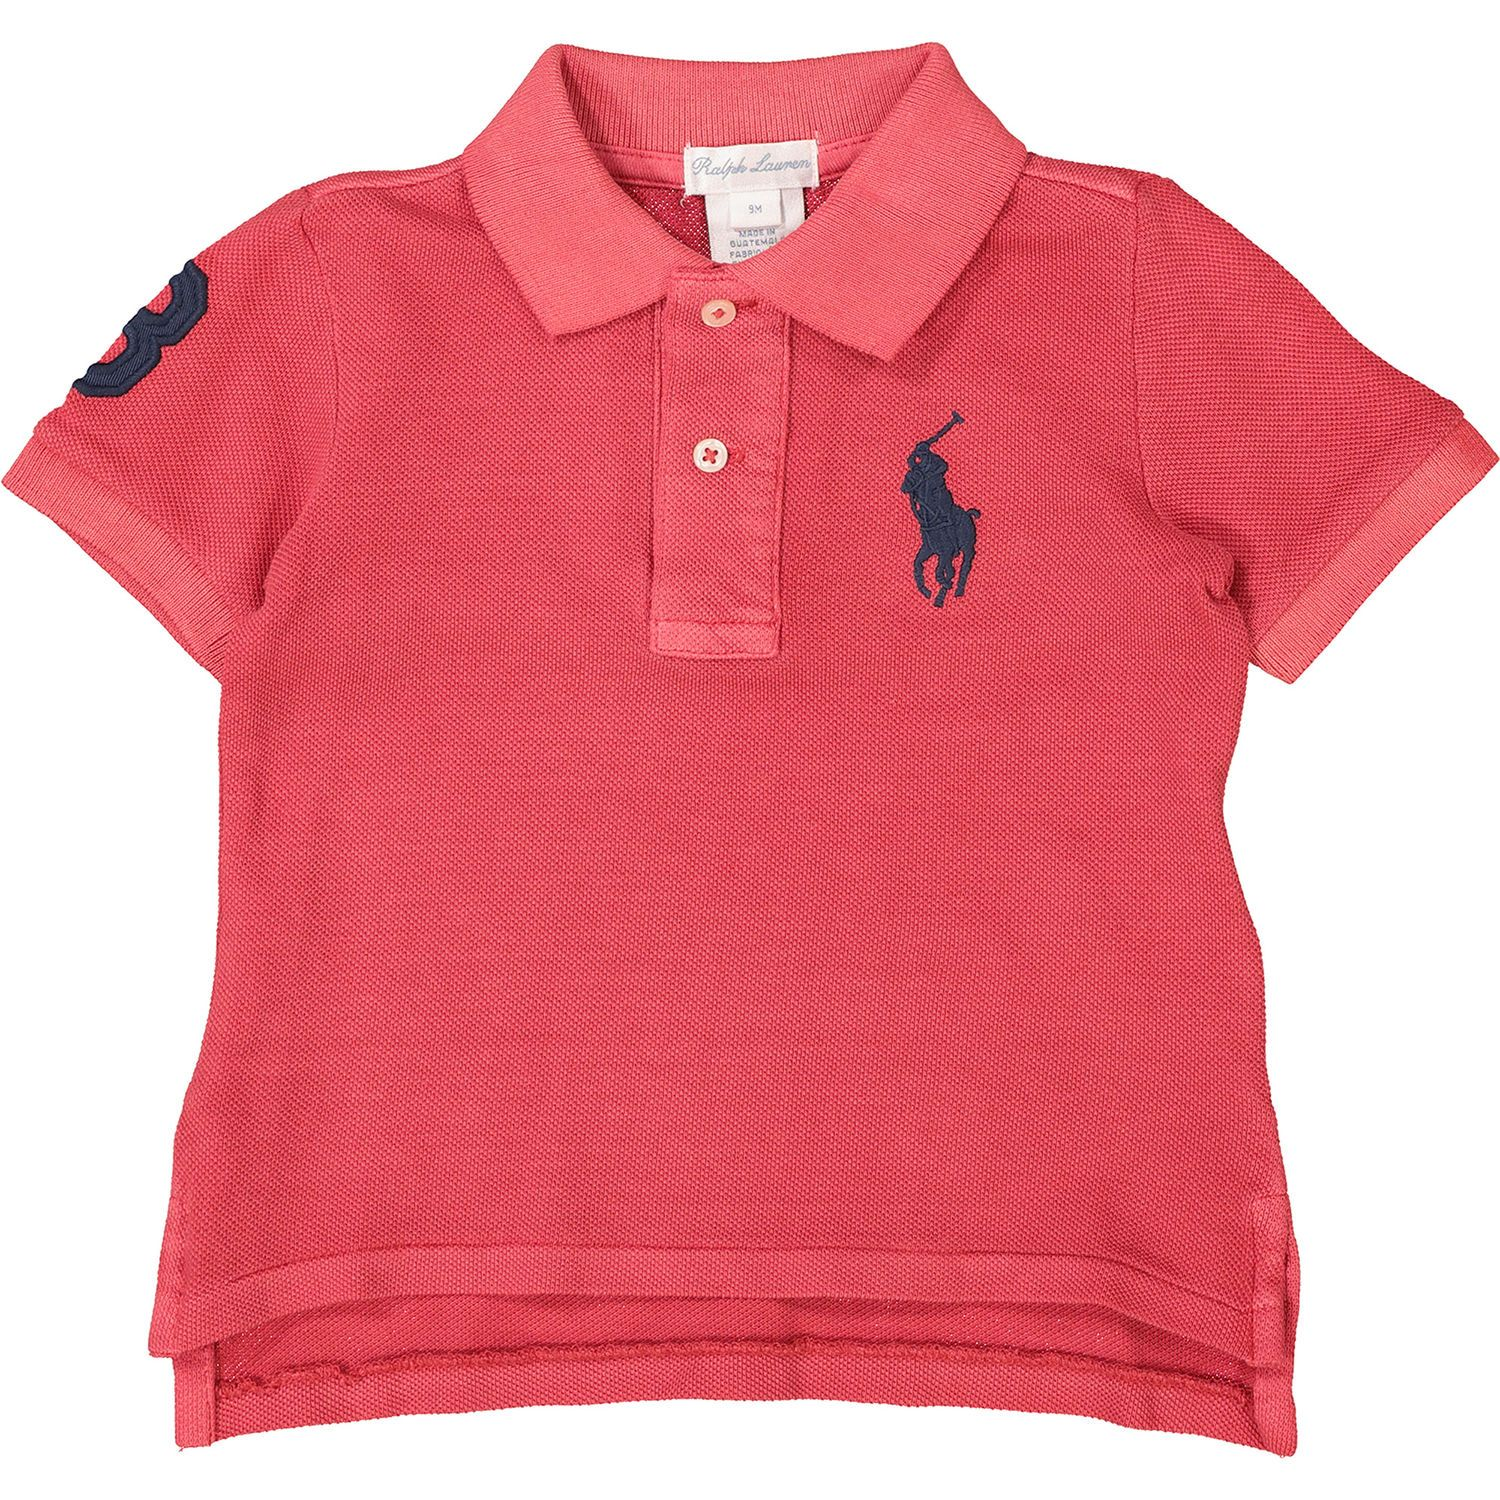 cba0341be4 ... new zealand red polo 8 top polos nursery and baby care ba686 57e66  netherlands ralph lauren shirts tk maxx ...